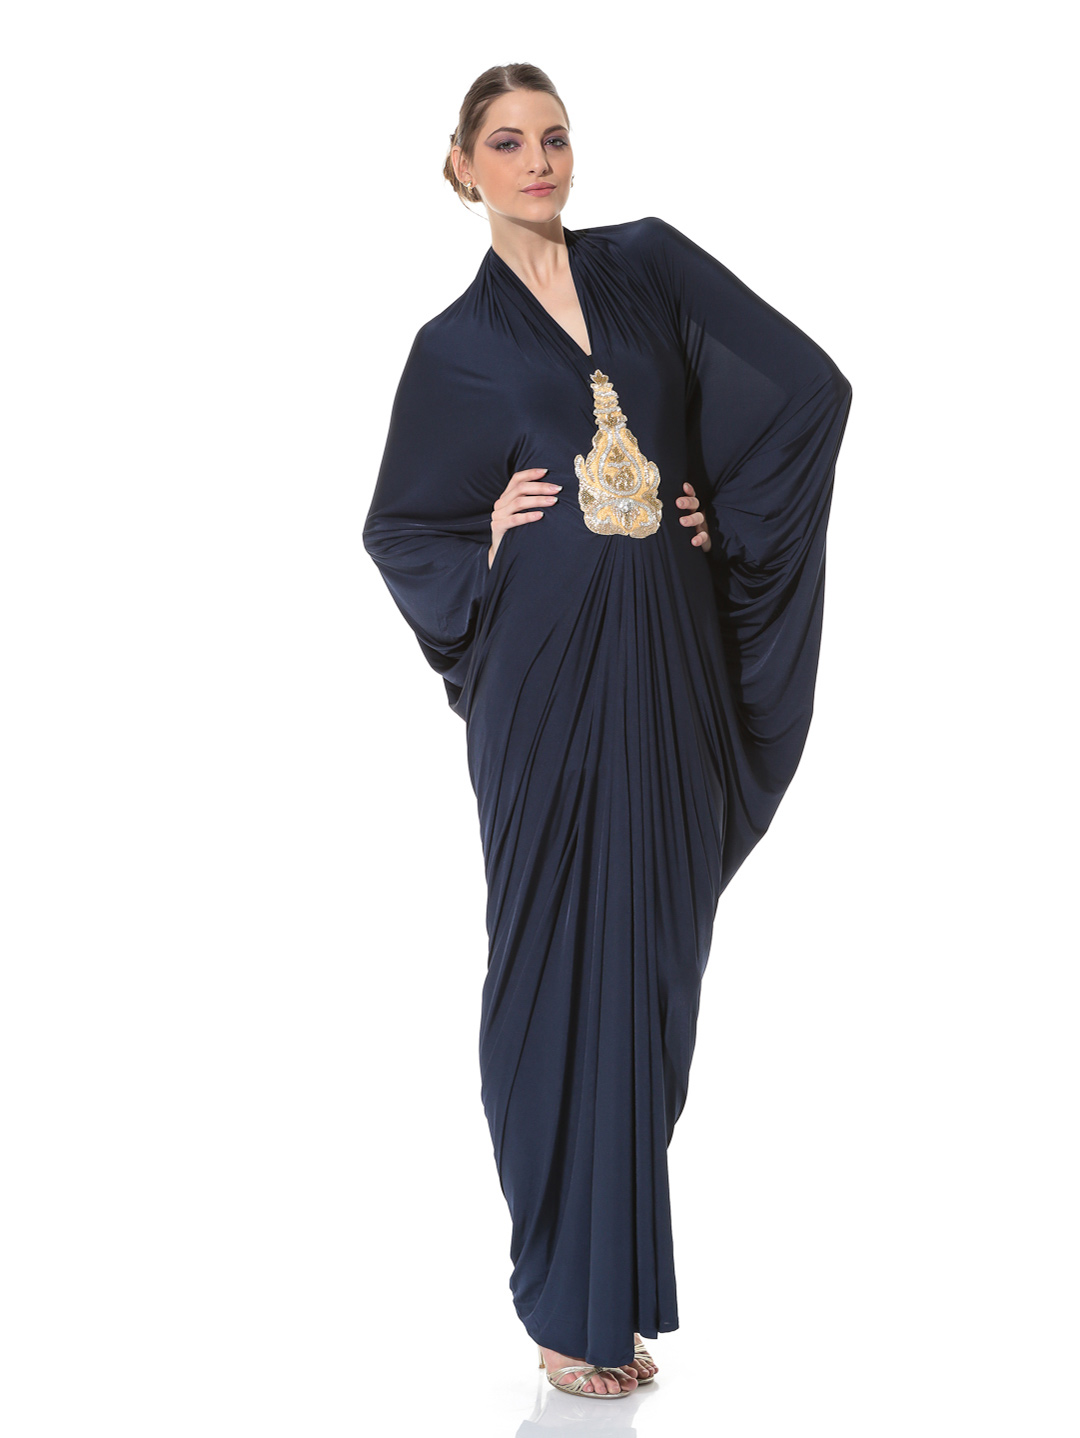 Abaya Dubai Abaya Fashion 2013 Luxury Dubai Abayas Asian Clothing